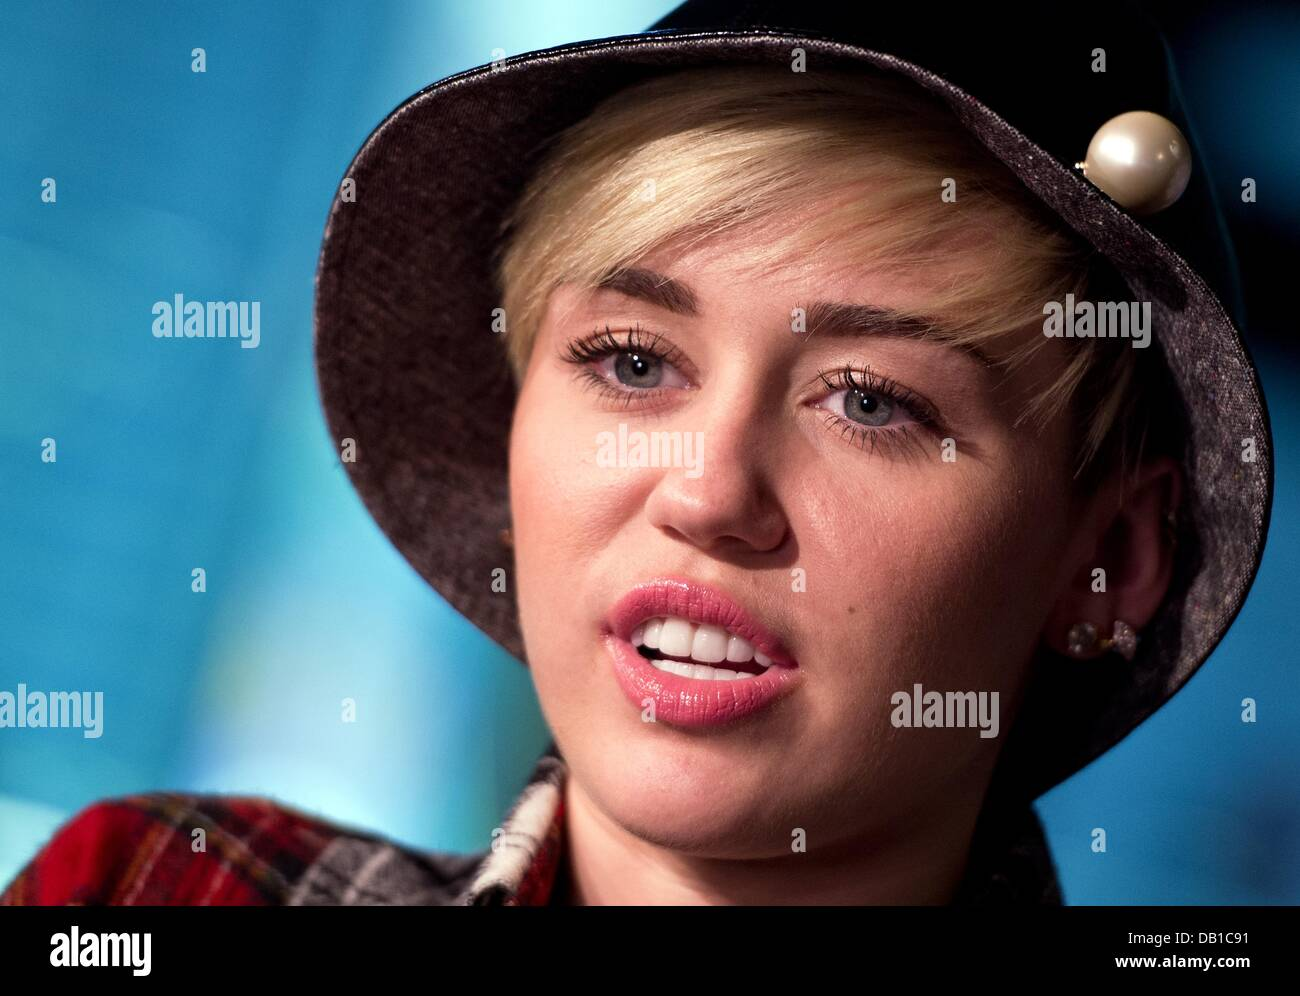 Who is miley cyrus dating 2013